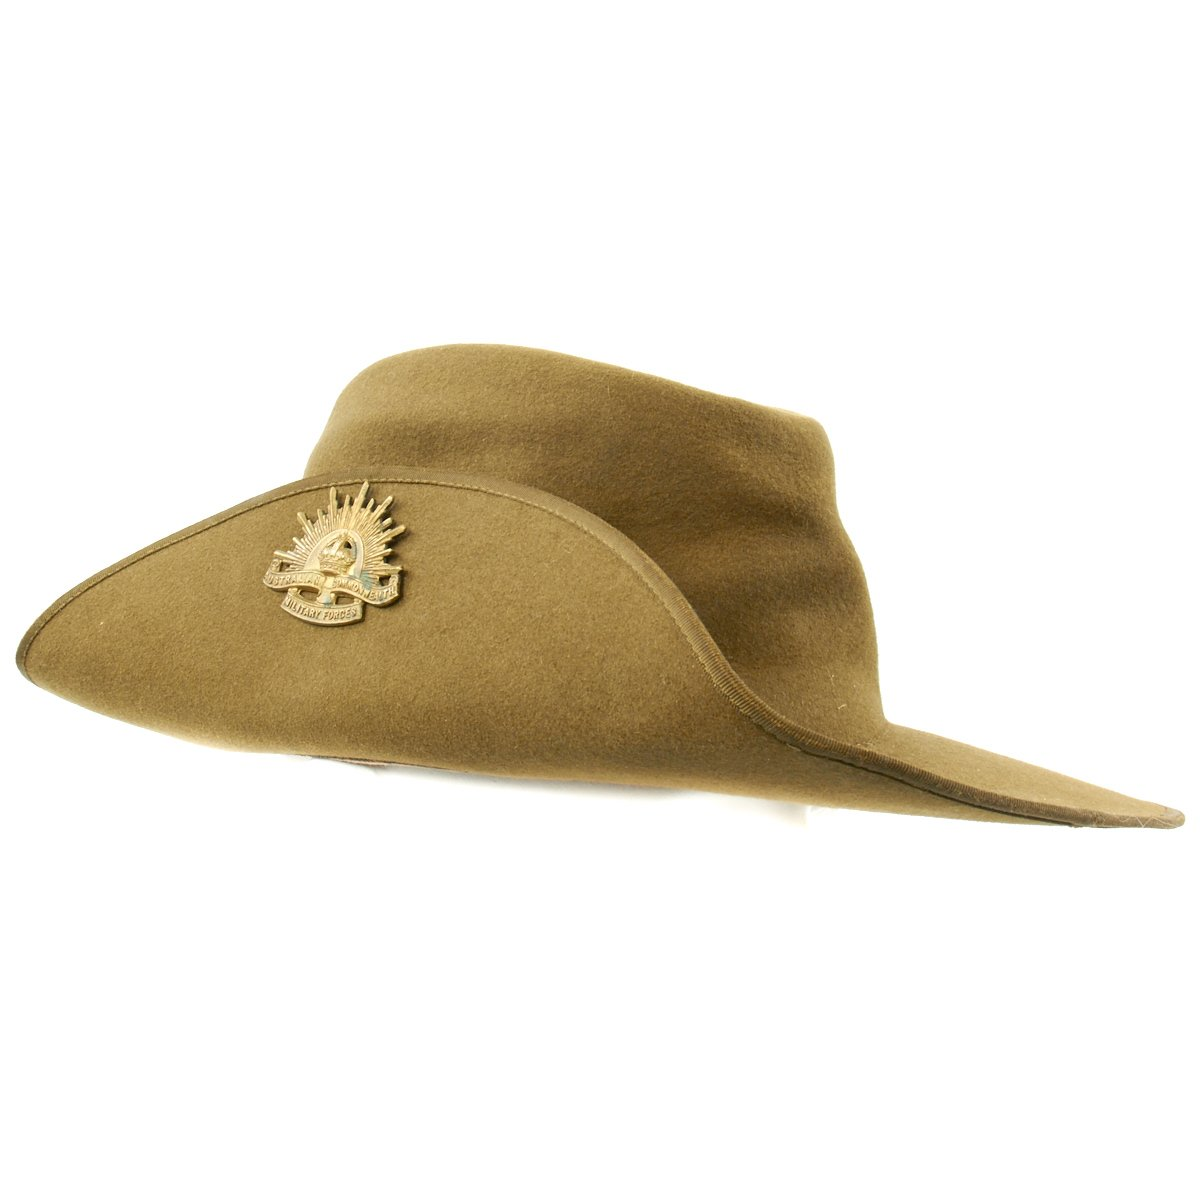 bb6d81984b2 Tap to expand · Next · Original WWII Australian Felt